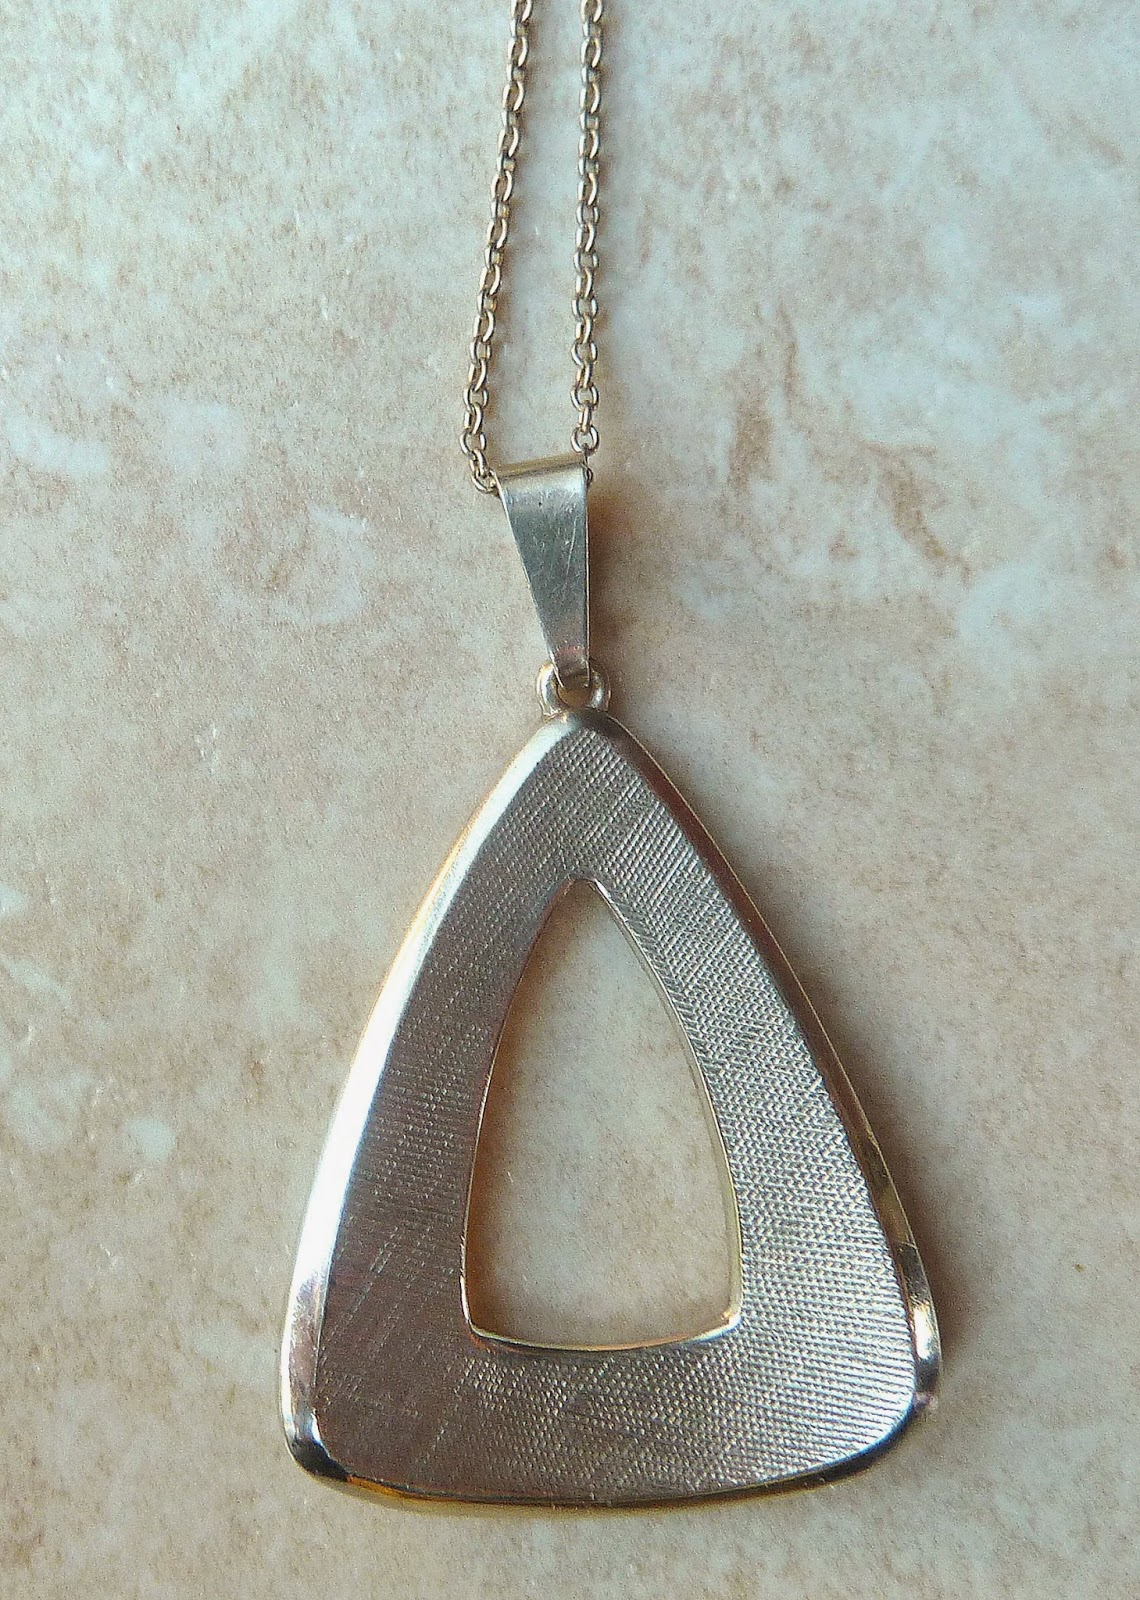 http://www.kcavintagegems.uk/vintage-modernist-style-sterling-silver-triangle-pendant-and-chain-335-p.asp